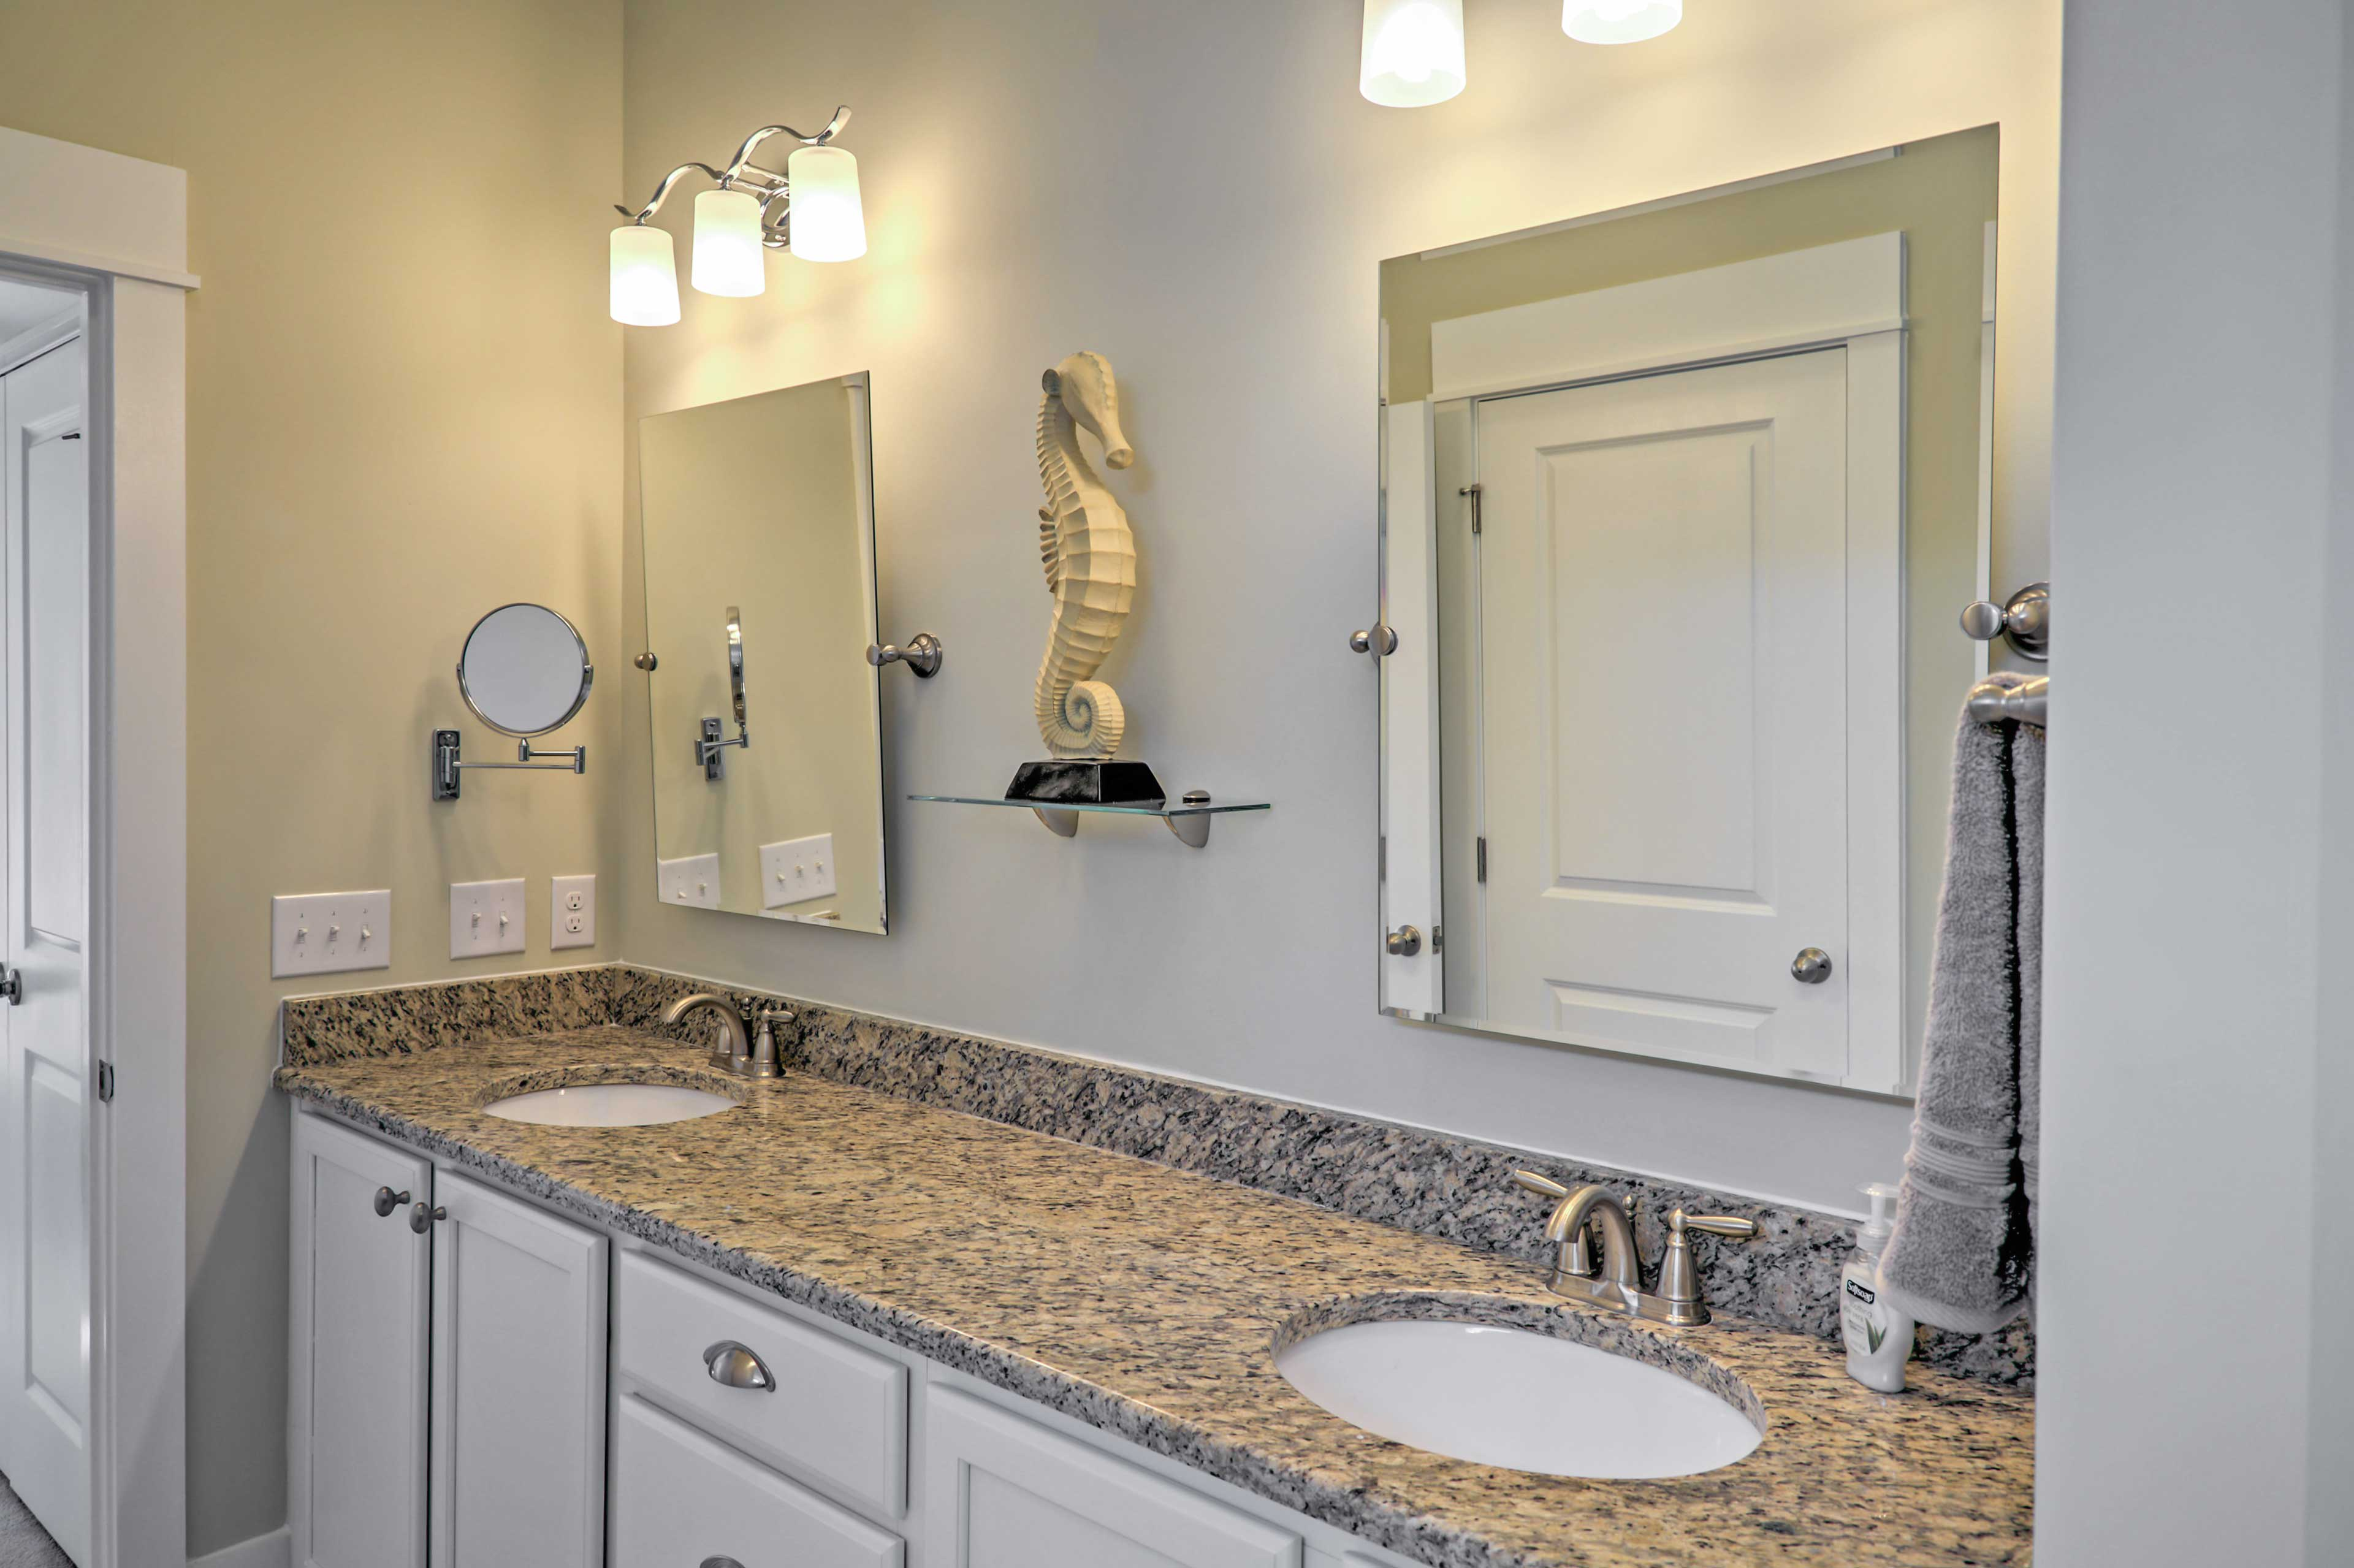 There's plenty of counter space for many to get ready in the master bathroom!